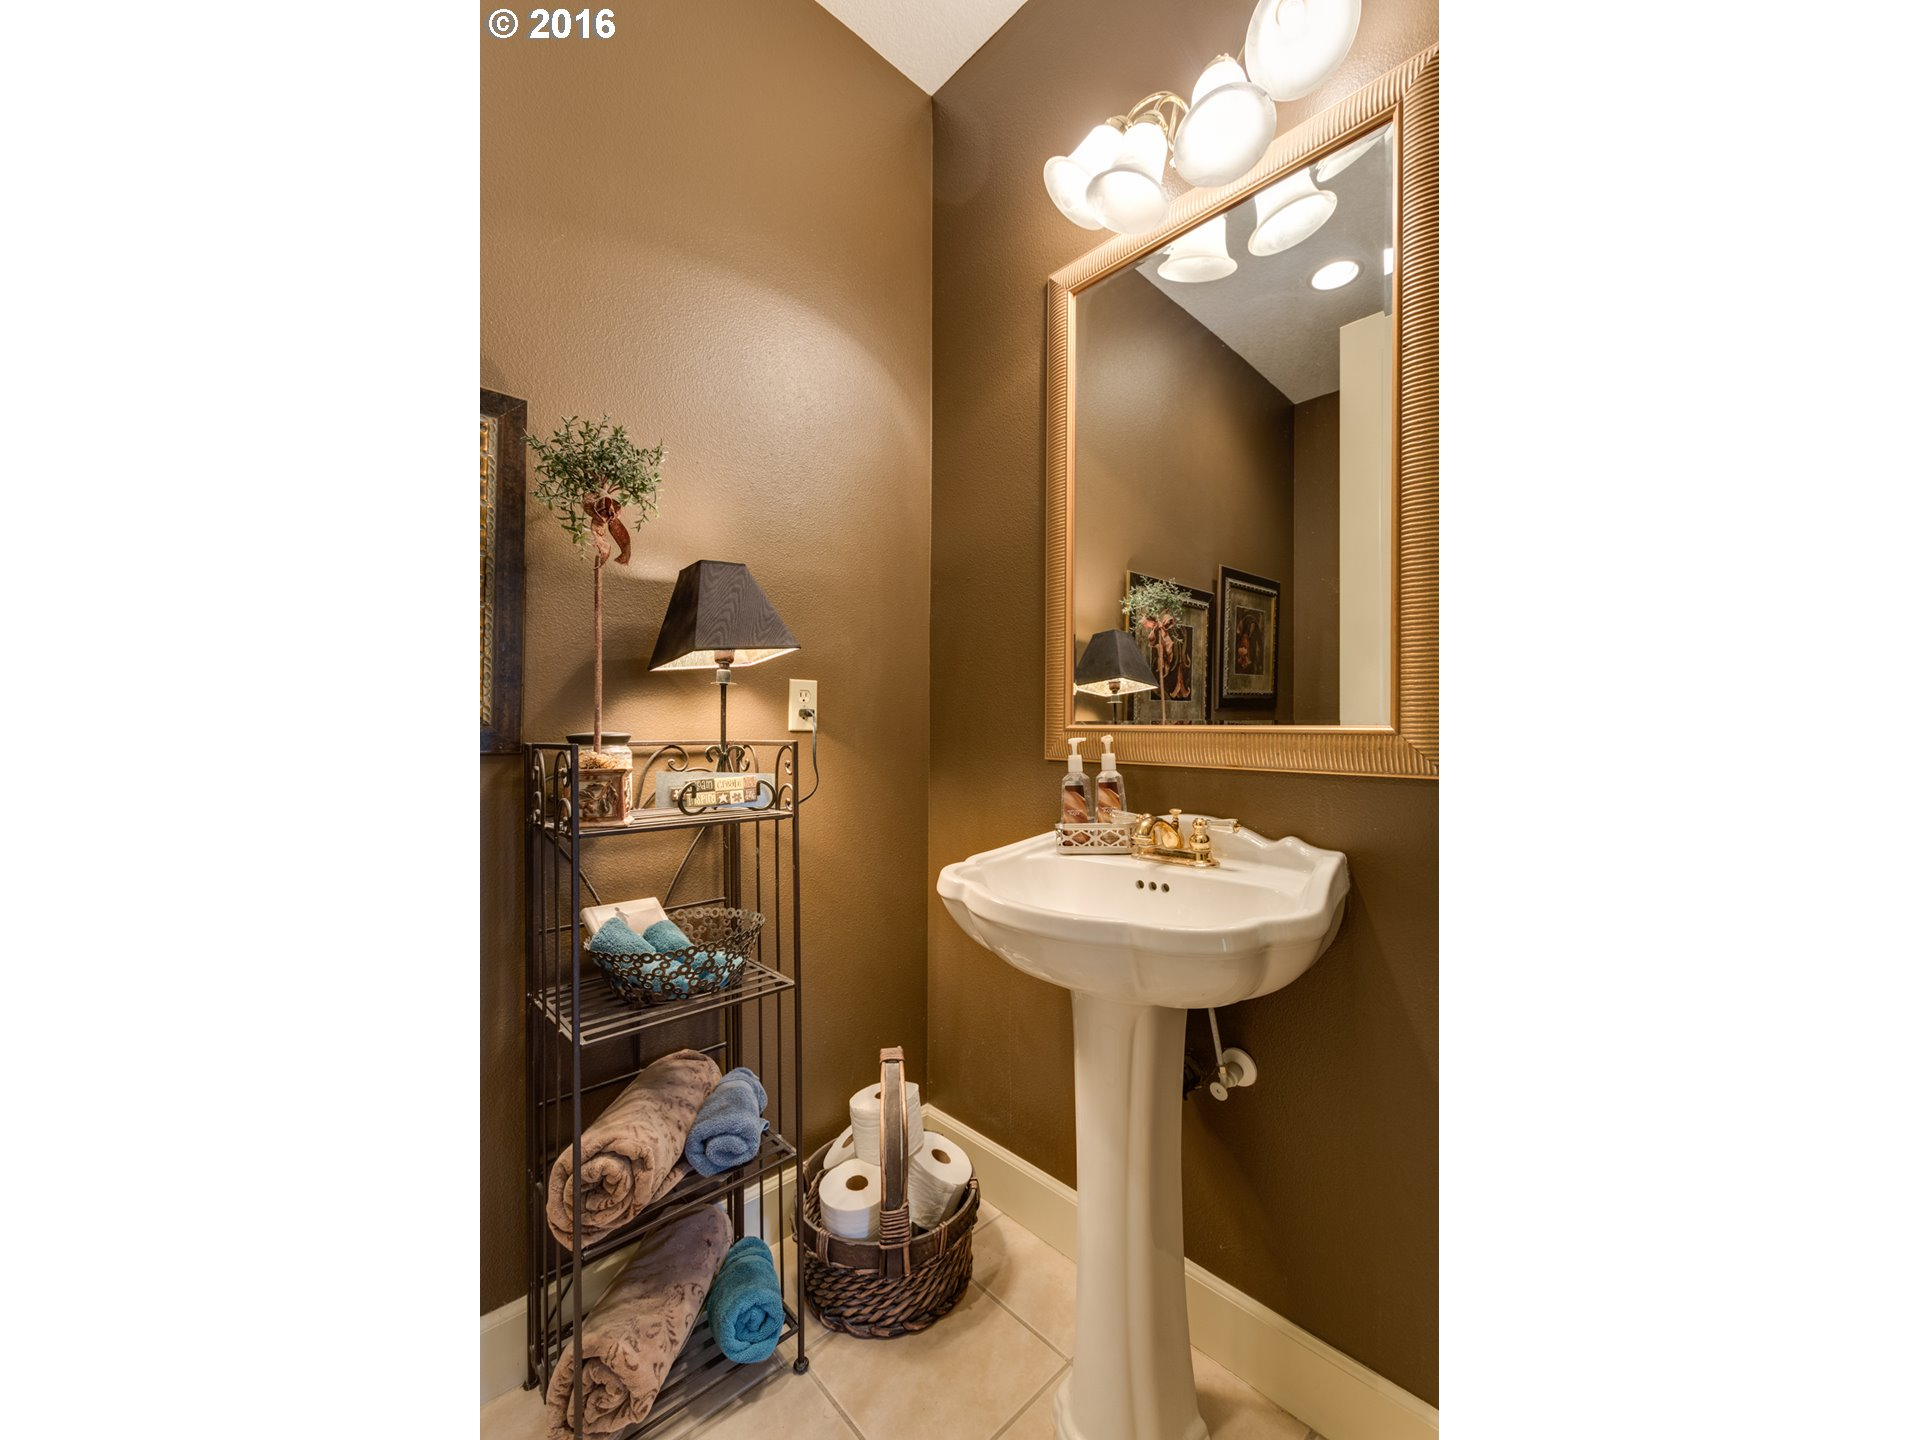 POWDER BATH MATT MORRIS 360-773-7333